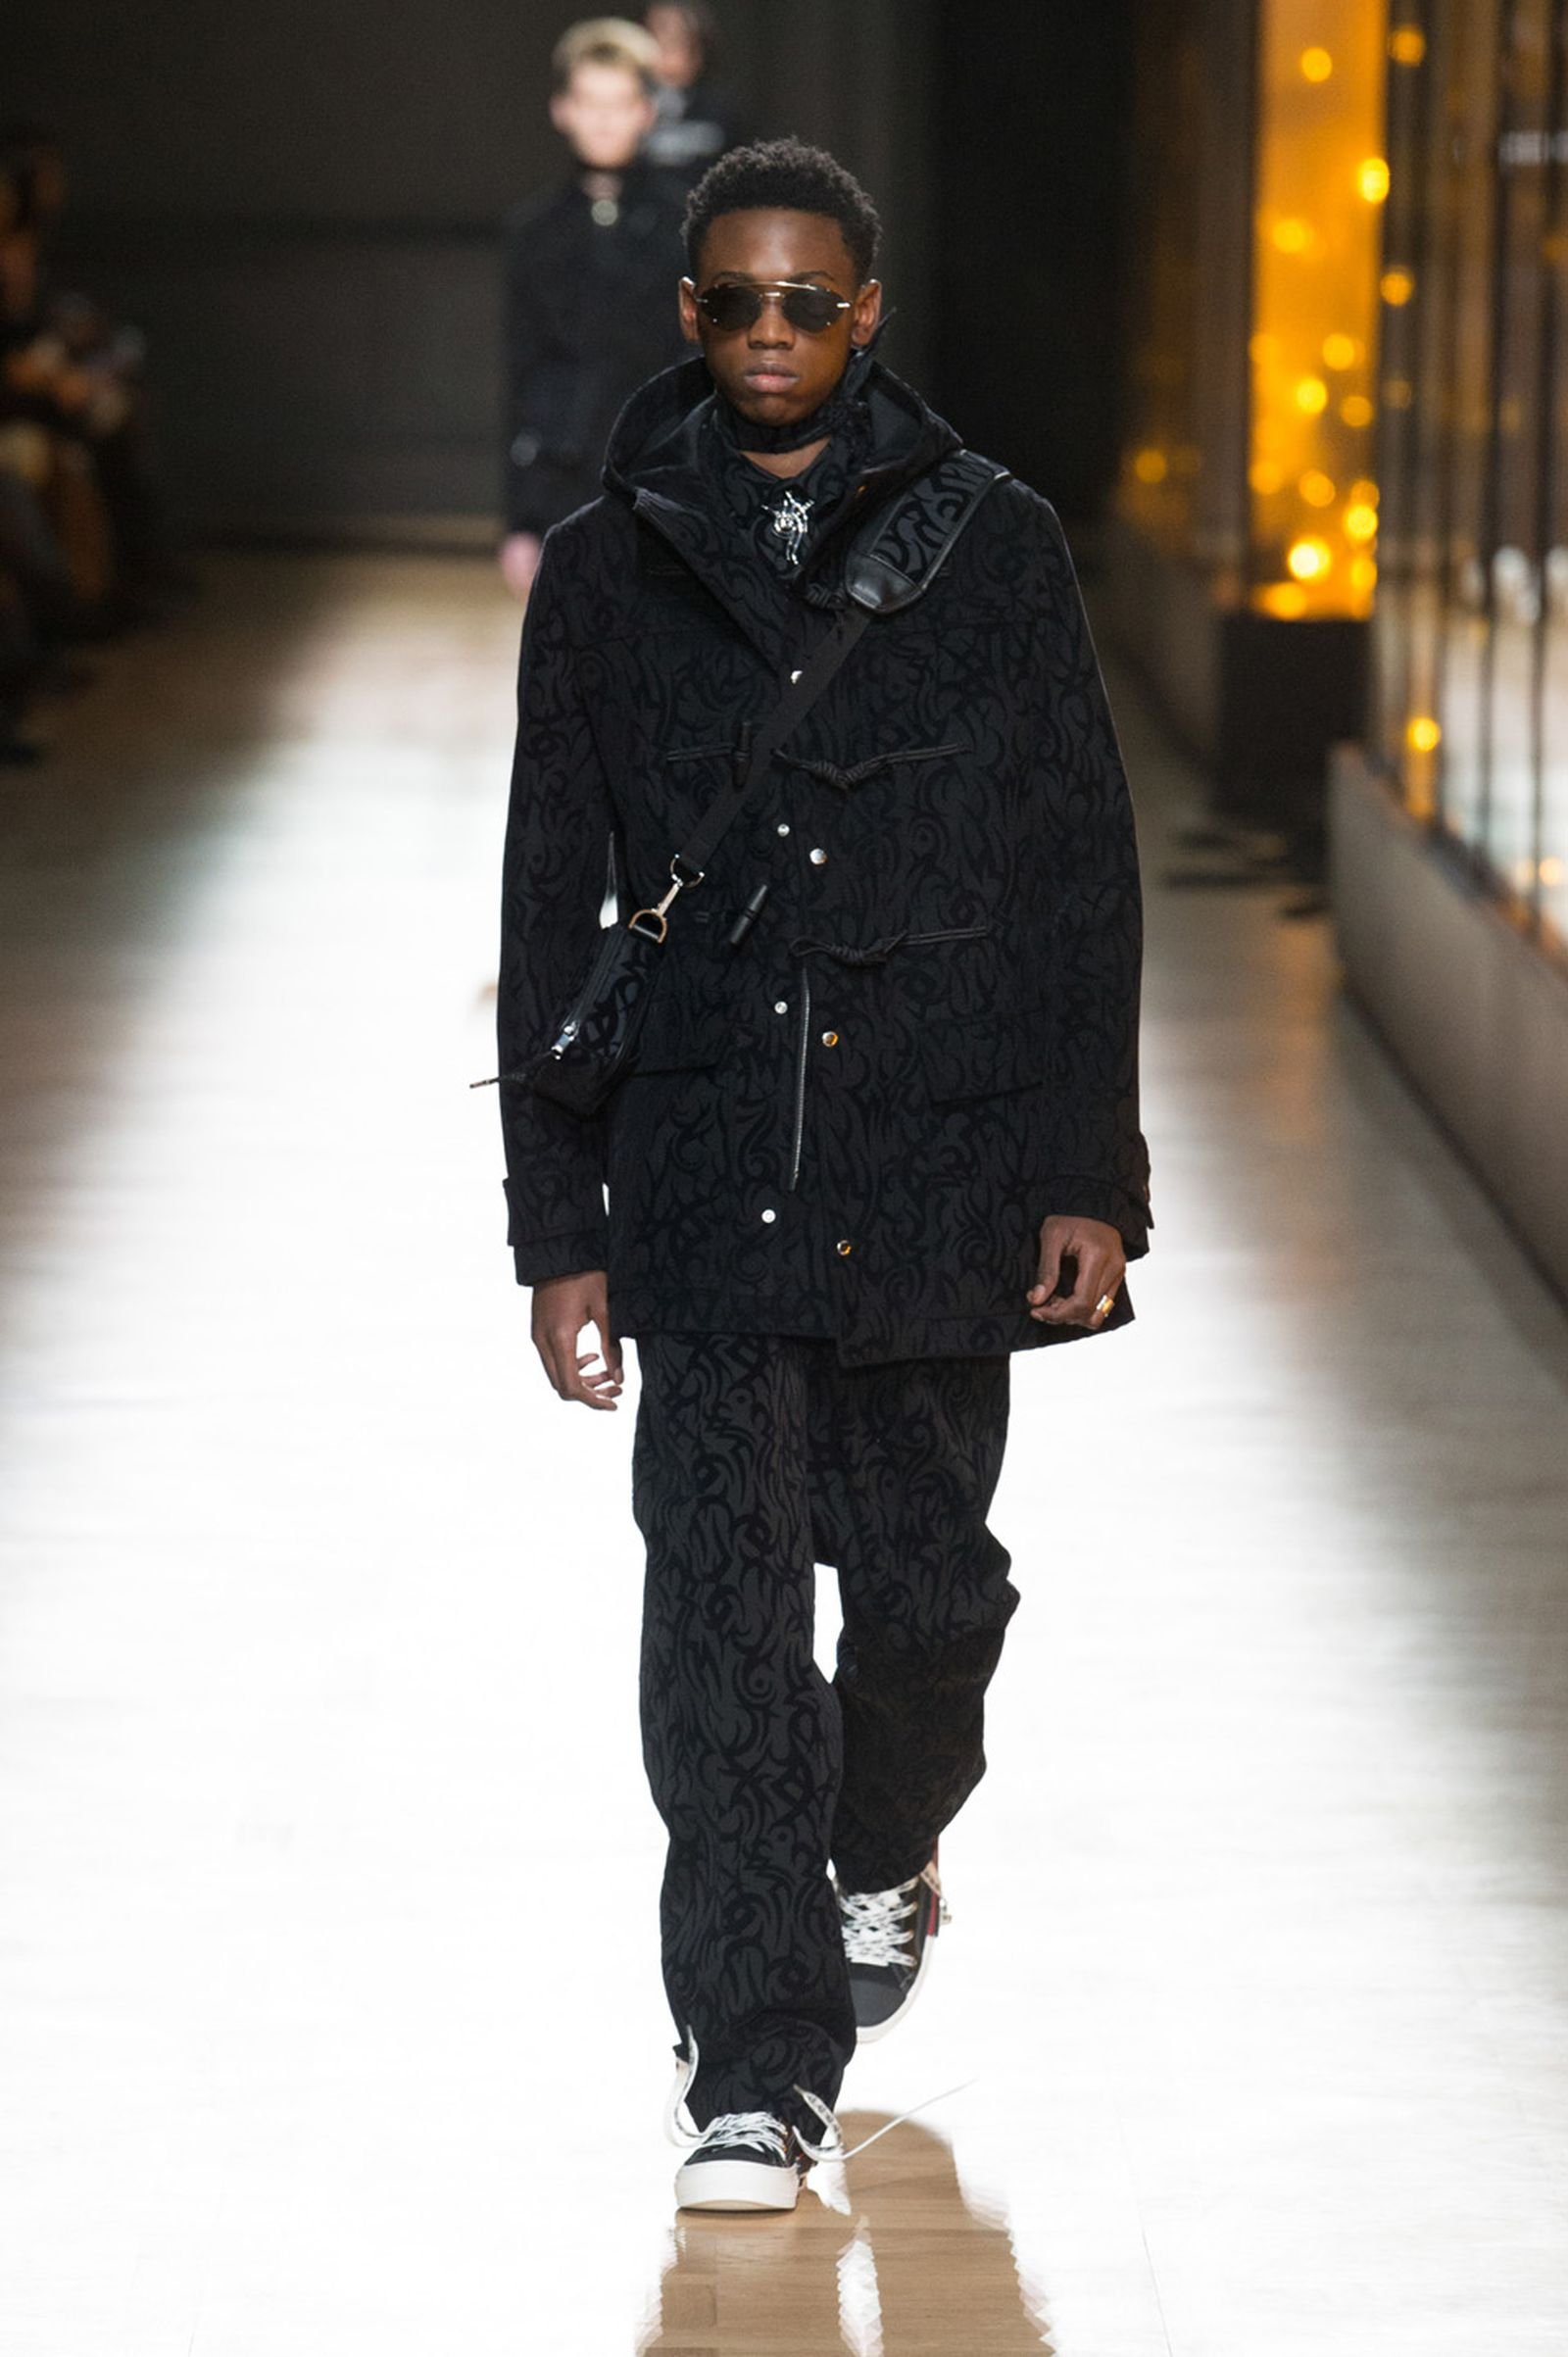 DIOR HOMME WINTER 18 19 BY PATRICE STABLE look44 Fall/WInter 2018 runway